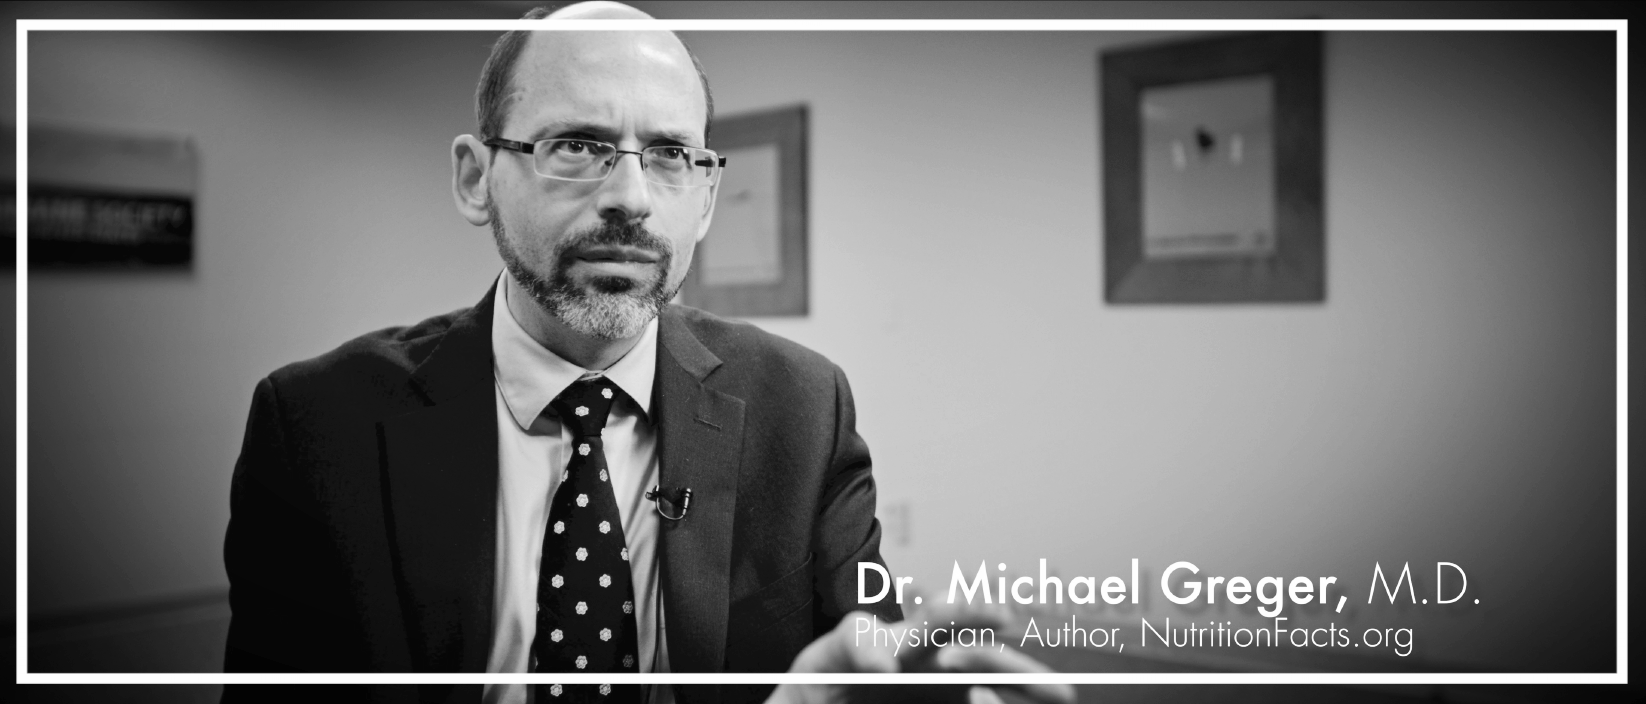 Dr. Michael Greger  is a physician, author, and internationally recognized speaker on a number of important public health issues. His latest book  How Not to Die  made the New York Times best seller list three times. A founding member of the American College of Lifestyle Medicine, he is a graduate of Cornell University School of Agriculture and Tufts University School of Medicine.